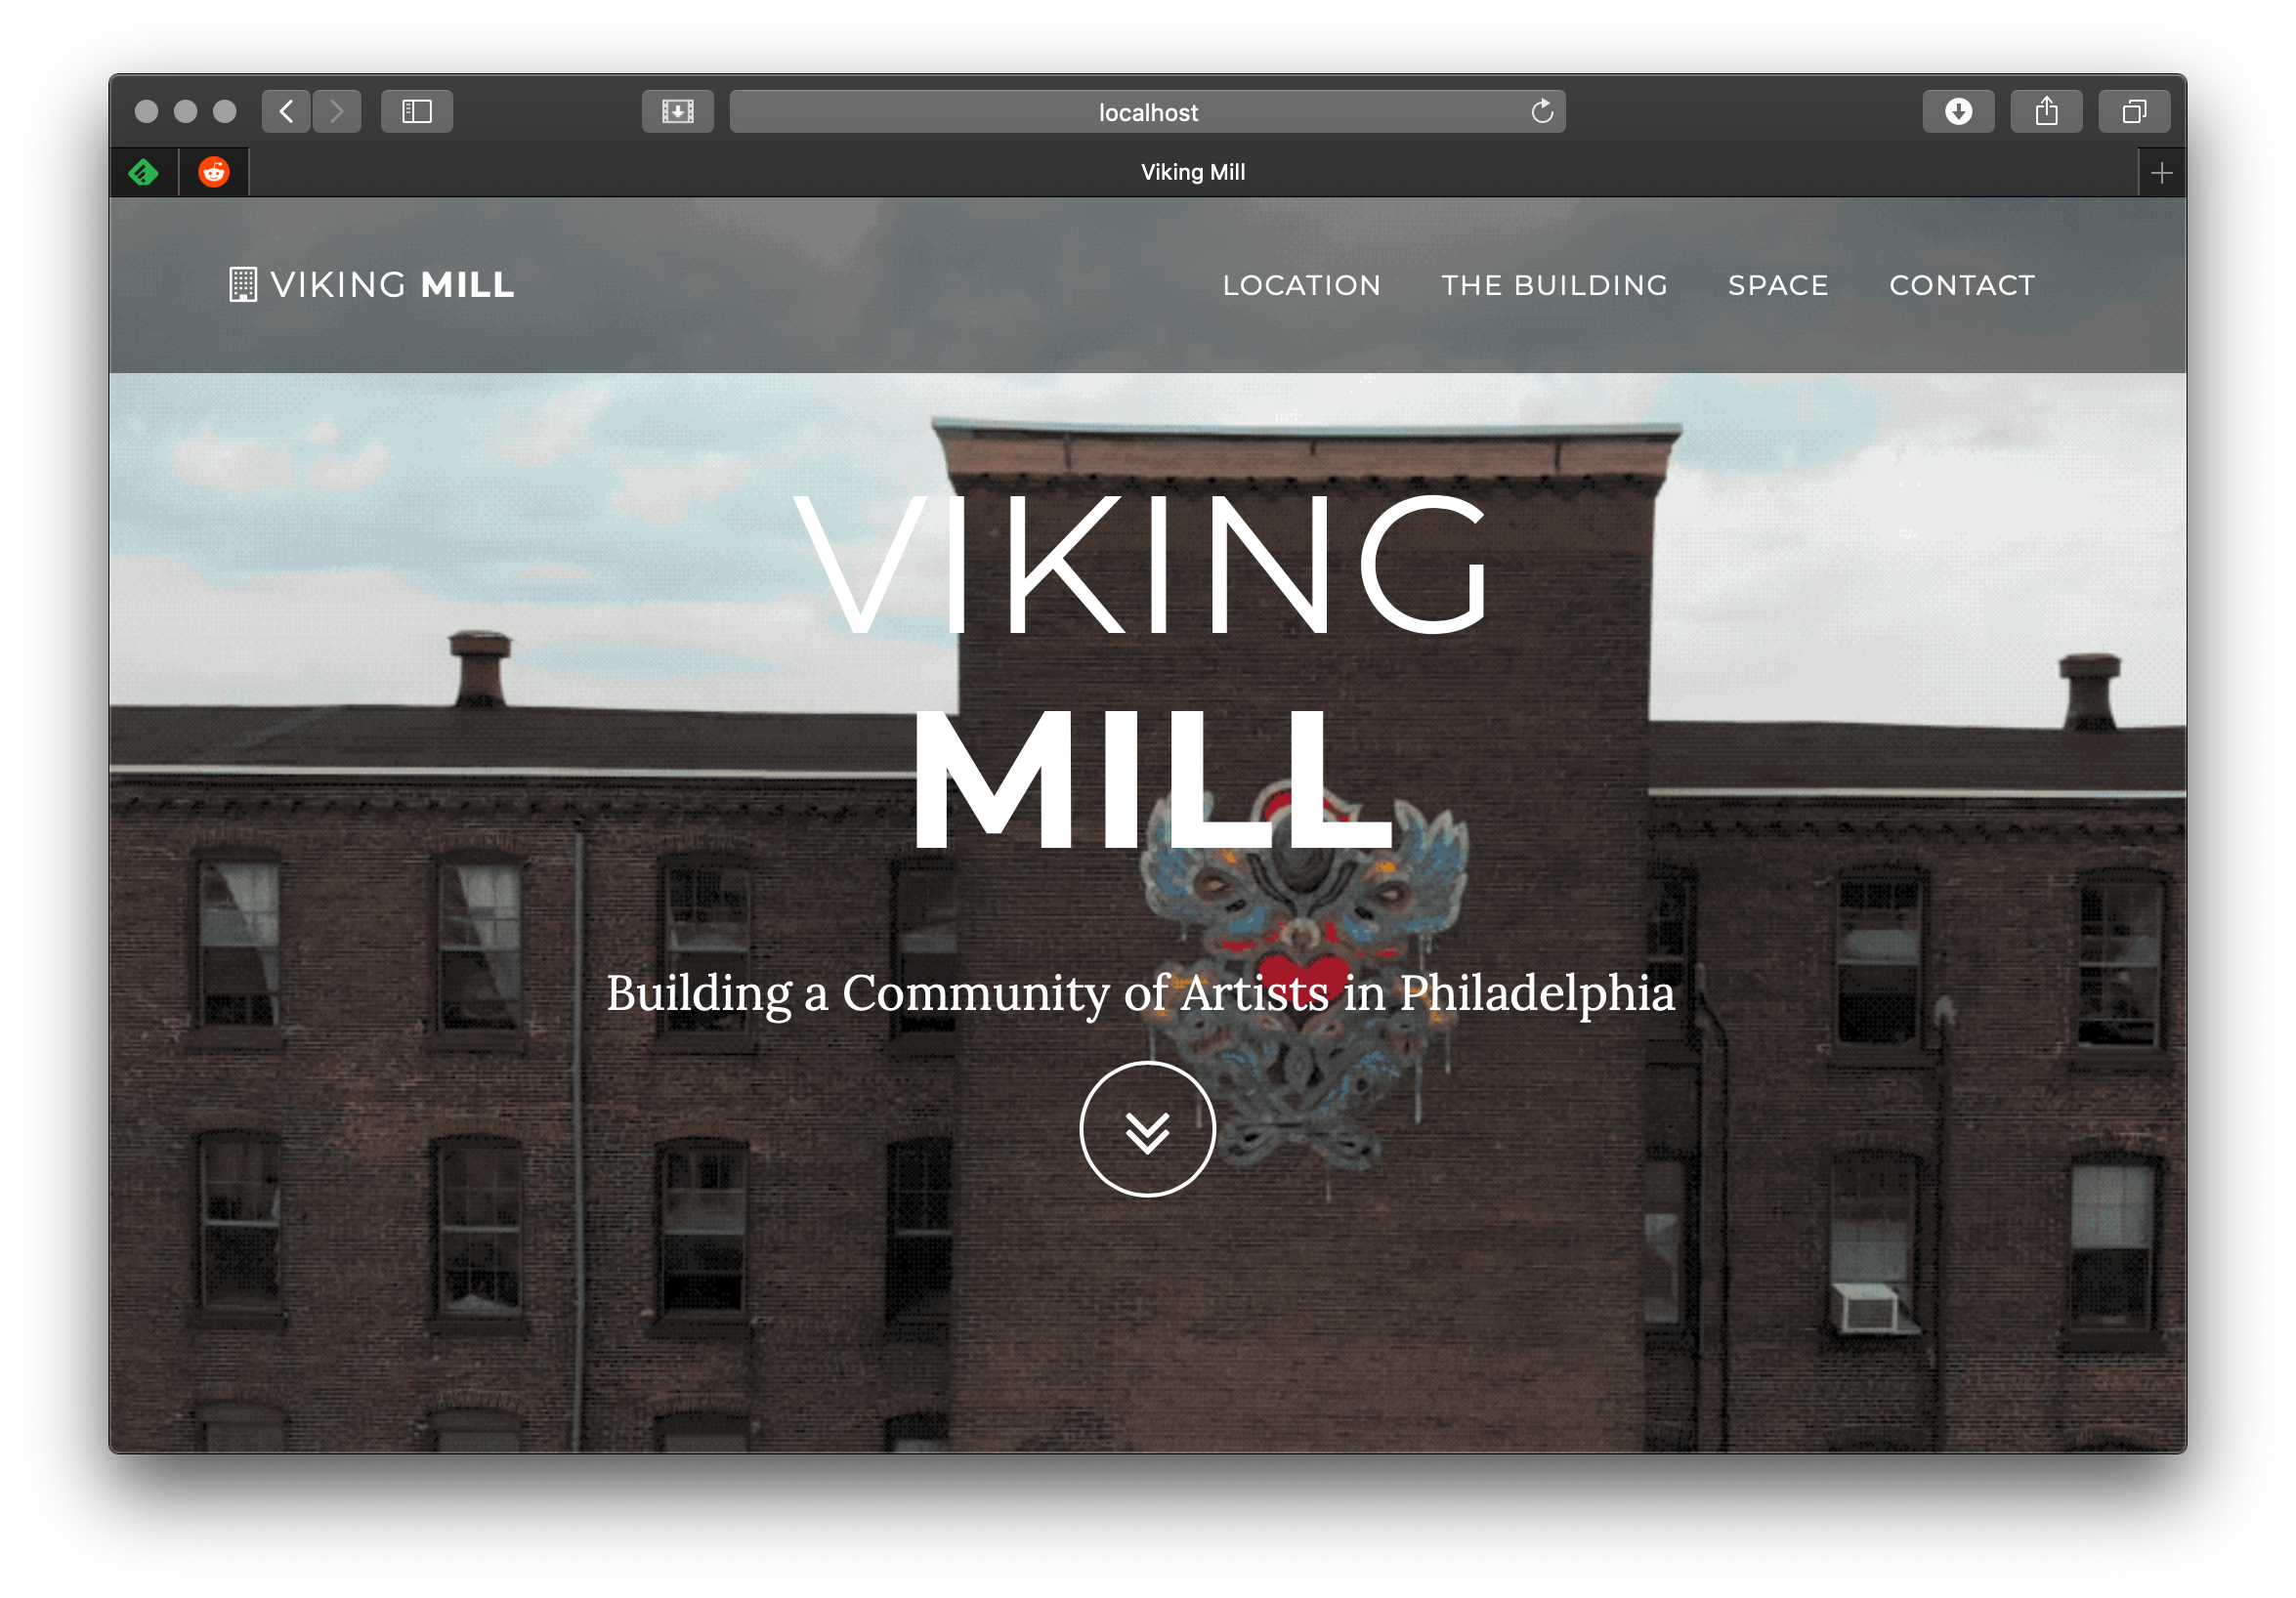 Viking Mill